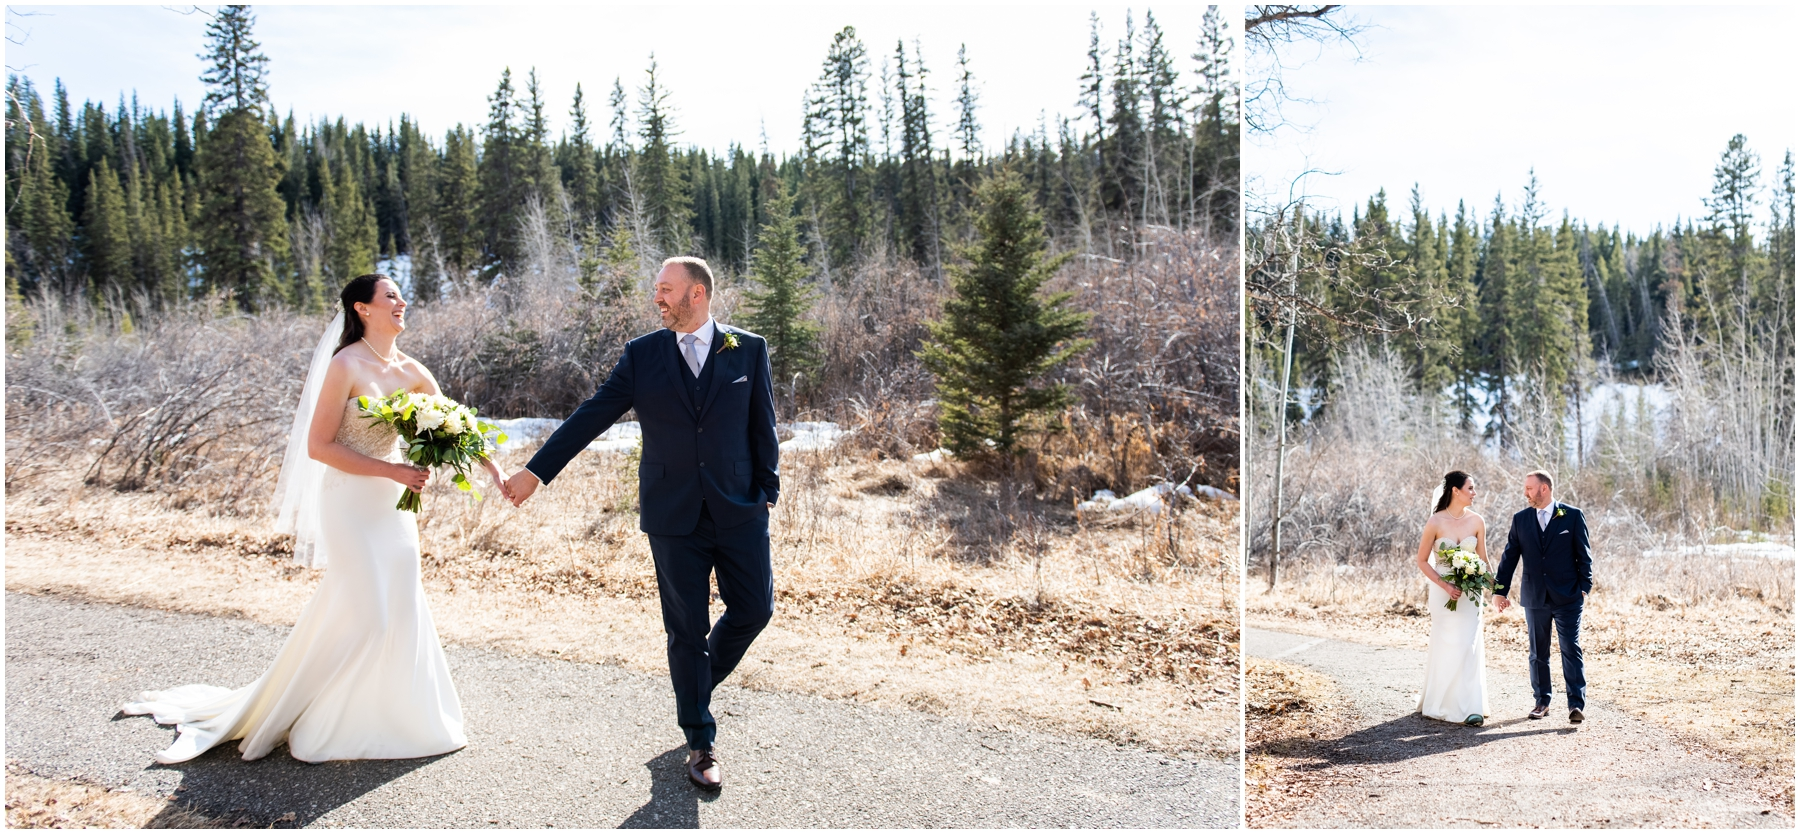 Calgary Alberta Spring Fish Creek Park Wedding Photographer